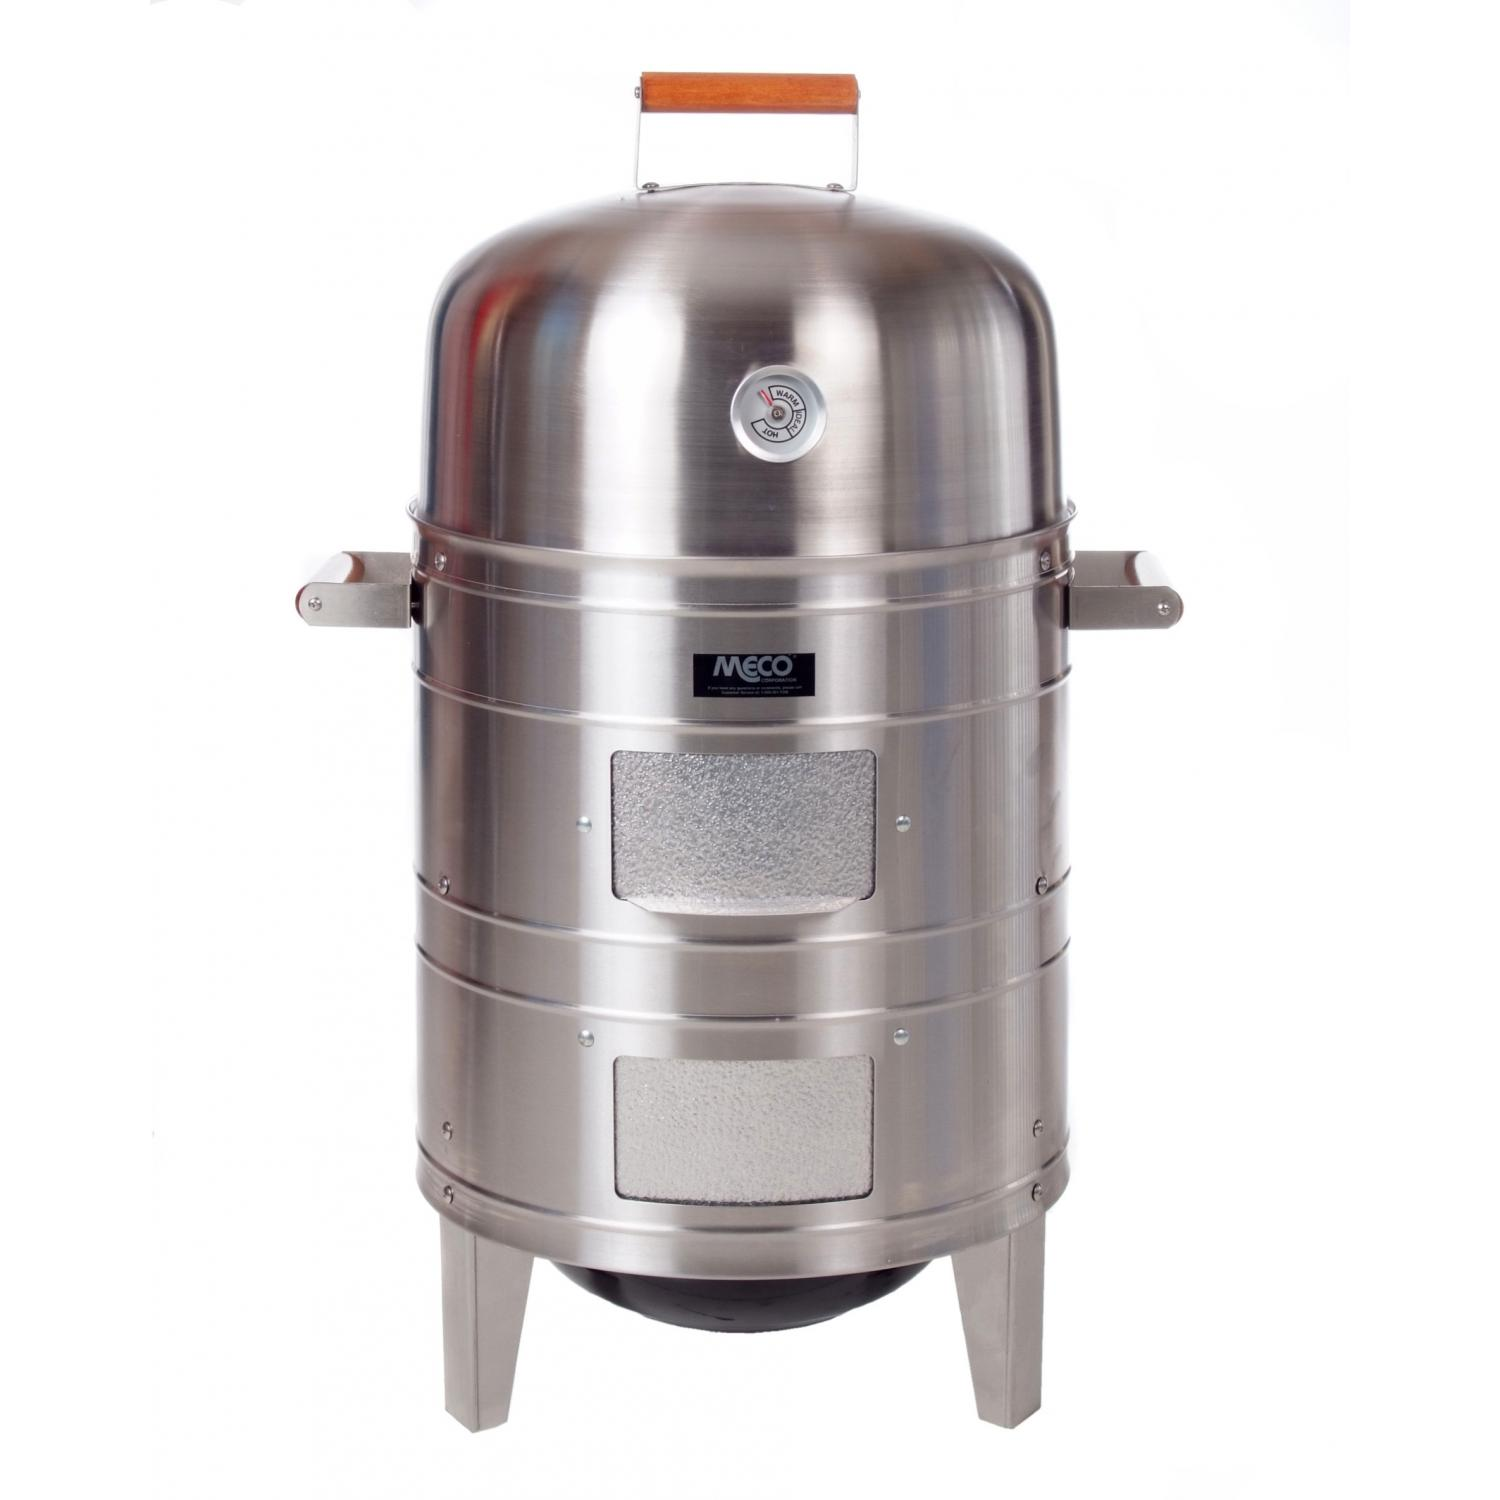 Meco Smokers - 5029 Electric Water Smoker - Stainless